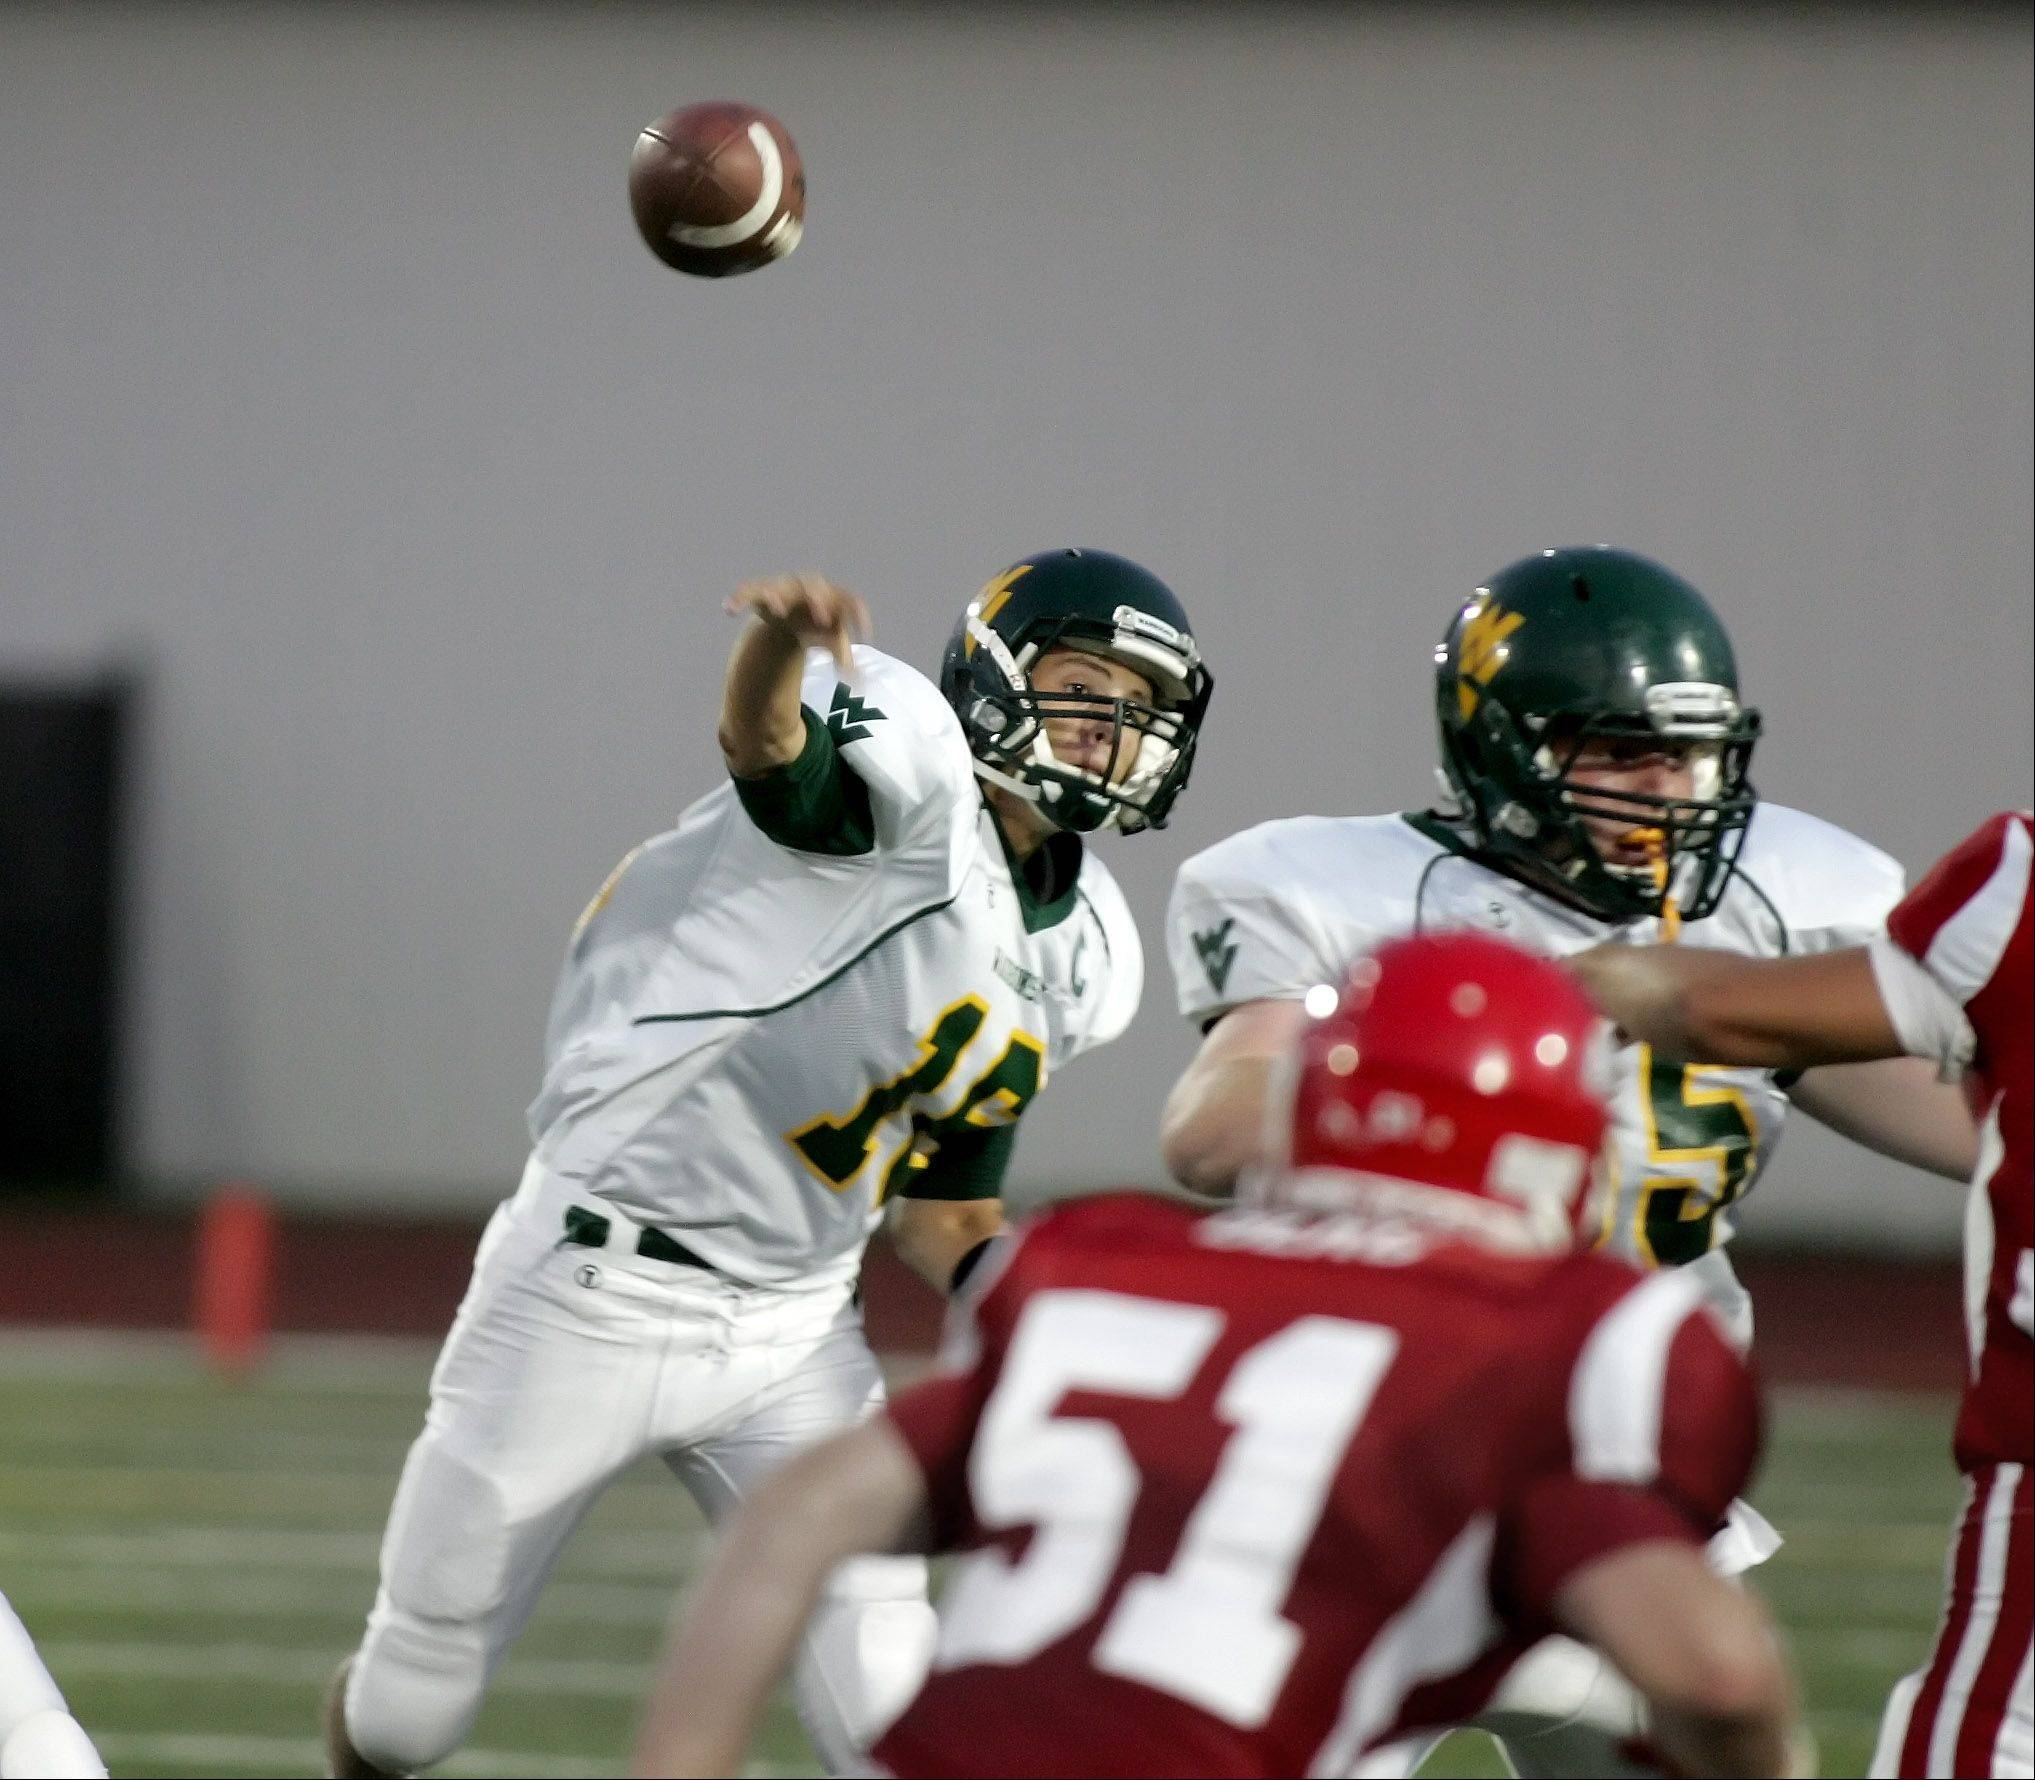 Waubonsie Valley quarterback Mitch Stefani throws a pass against Naperville Central in football action Friday in Naperville.